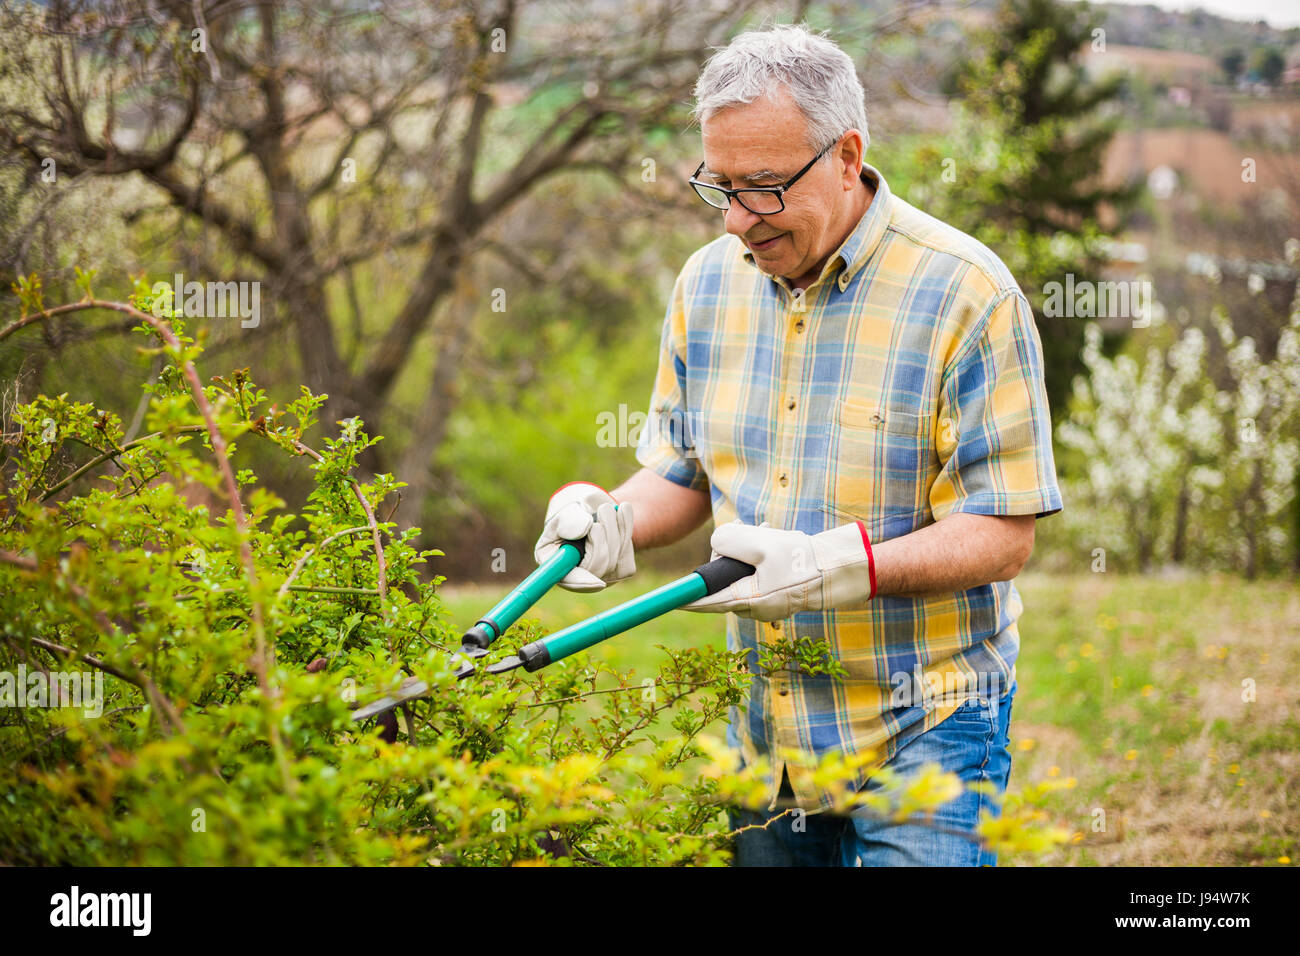 Senior man in his garden. He is pruning bushes. - Stock Image